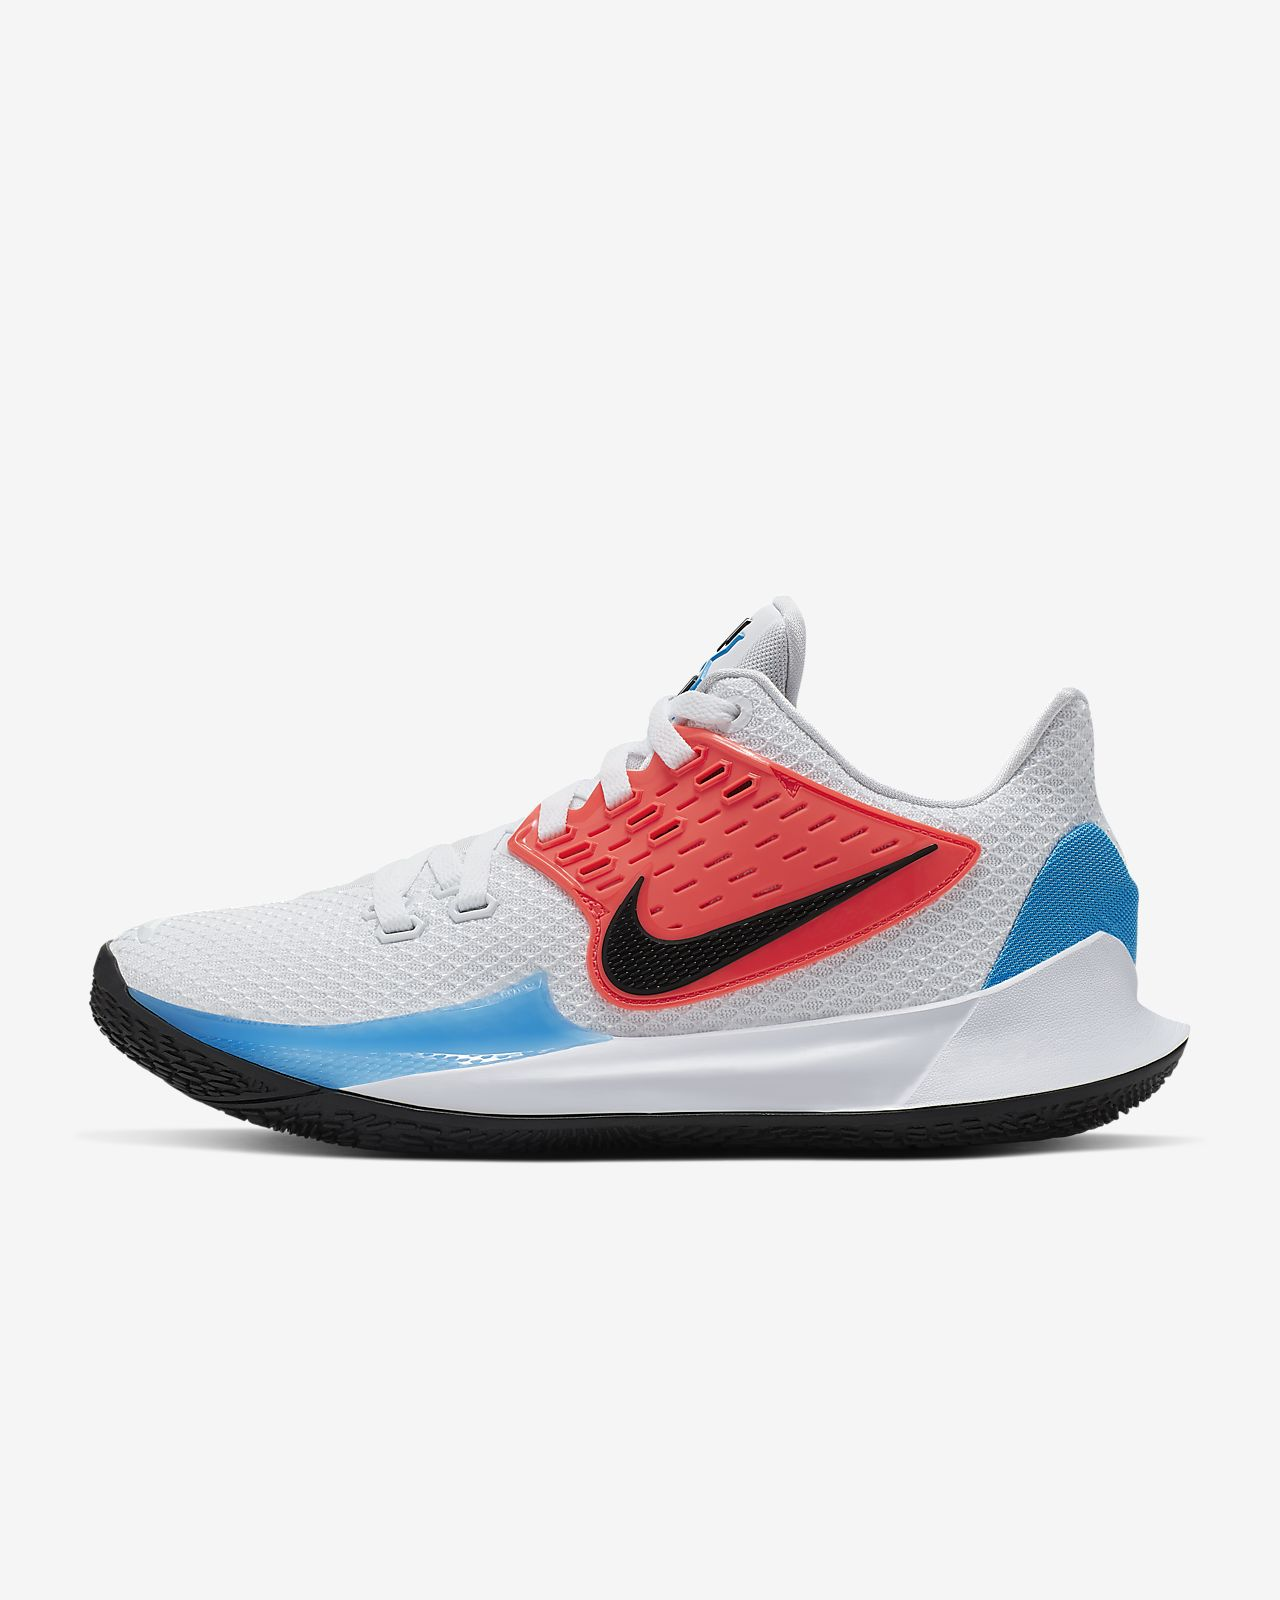 Kyrie Low 2 Basketballschuh